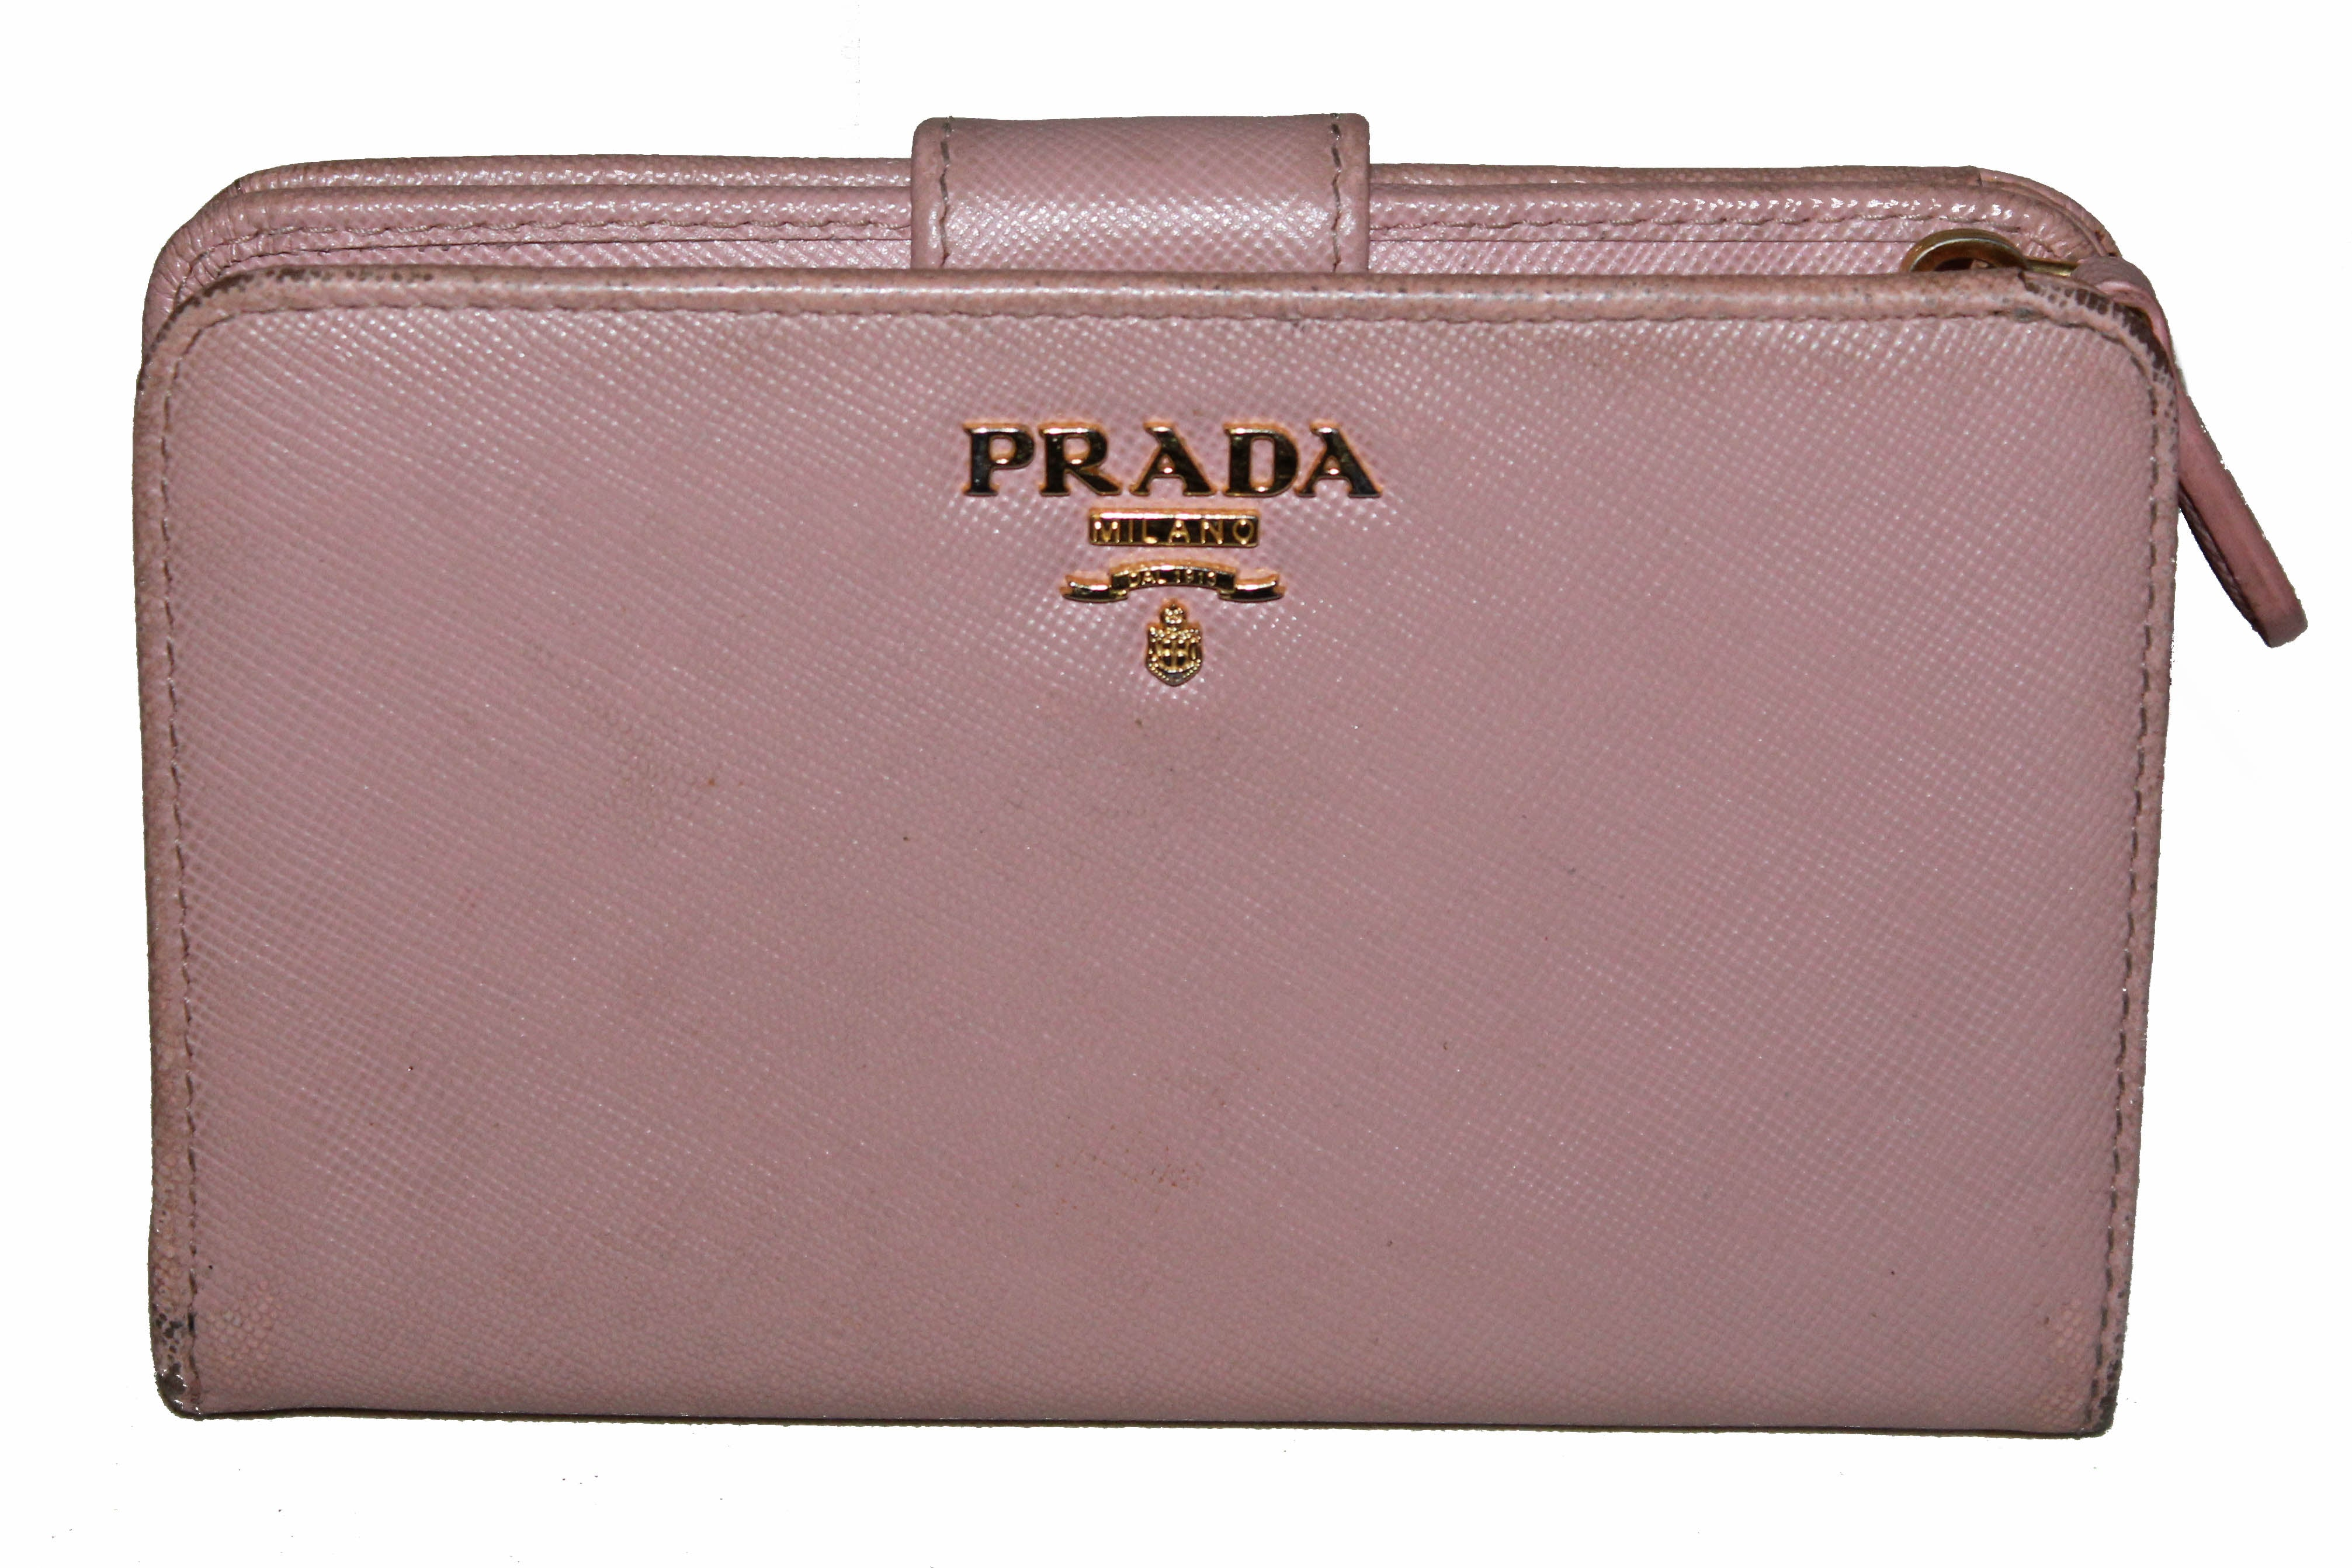 43fcb0cfca Authentic Prada Light Pink Saffiano Leather Compact Wallet